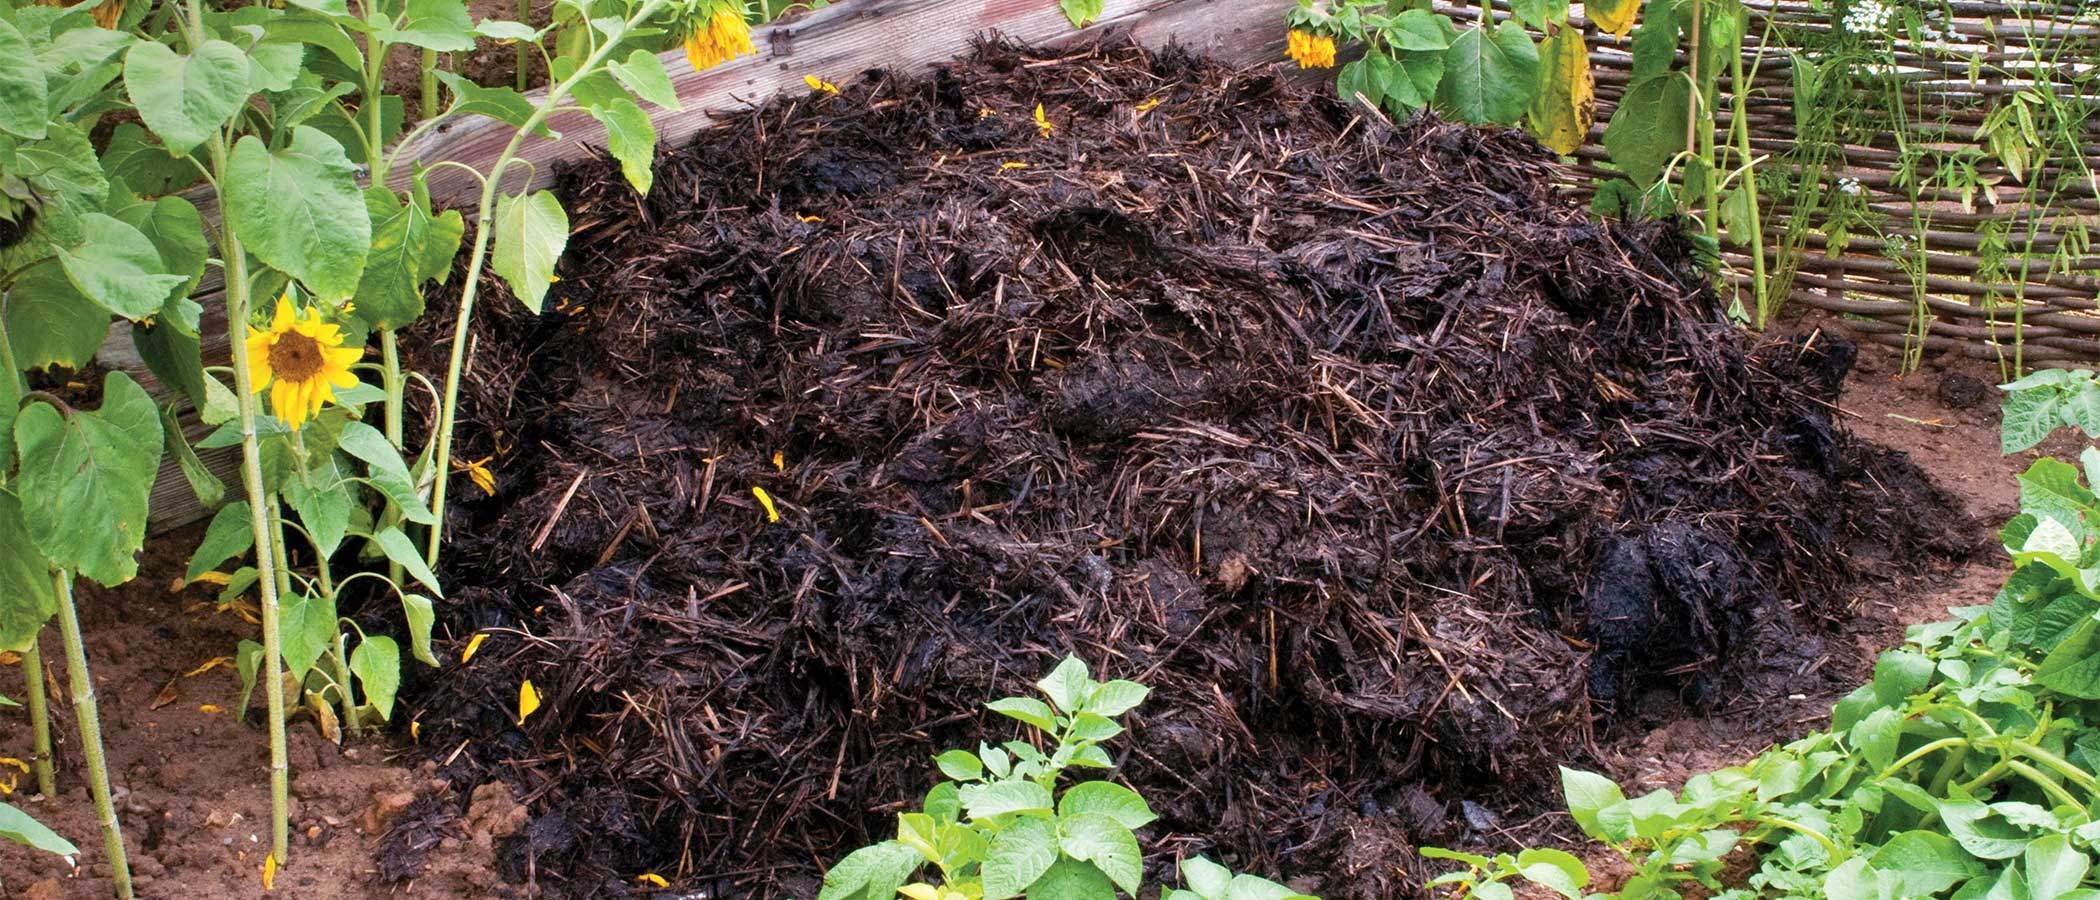 Compost pile in a home garden.